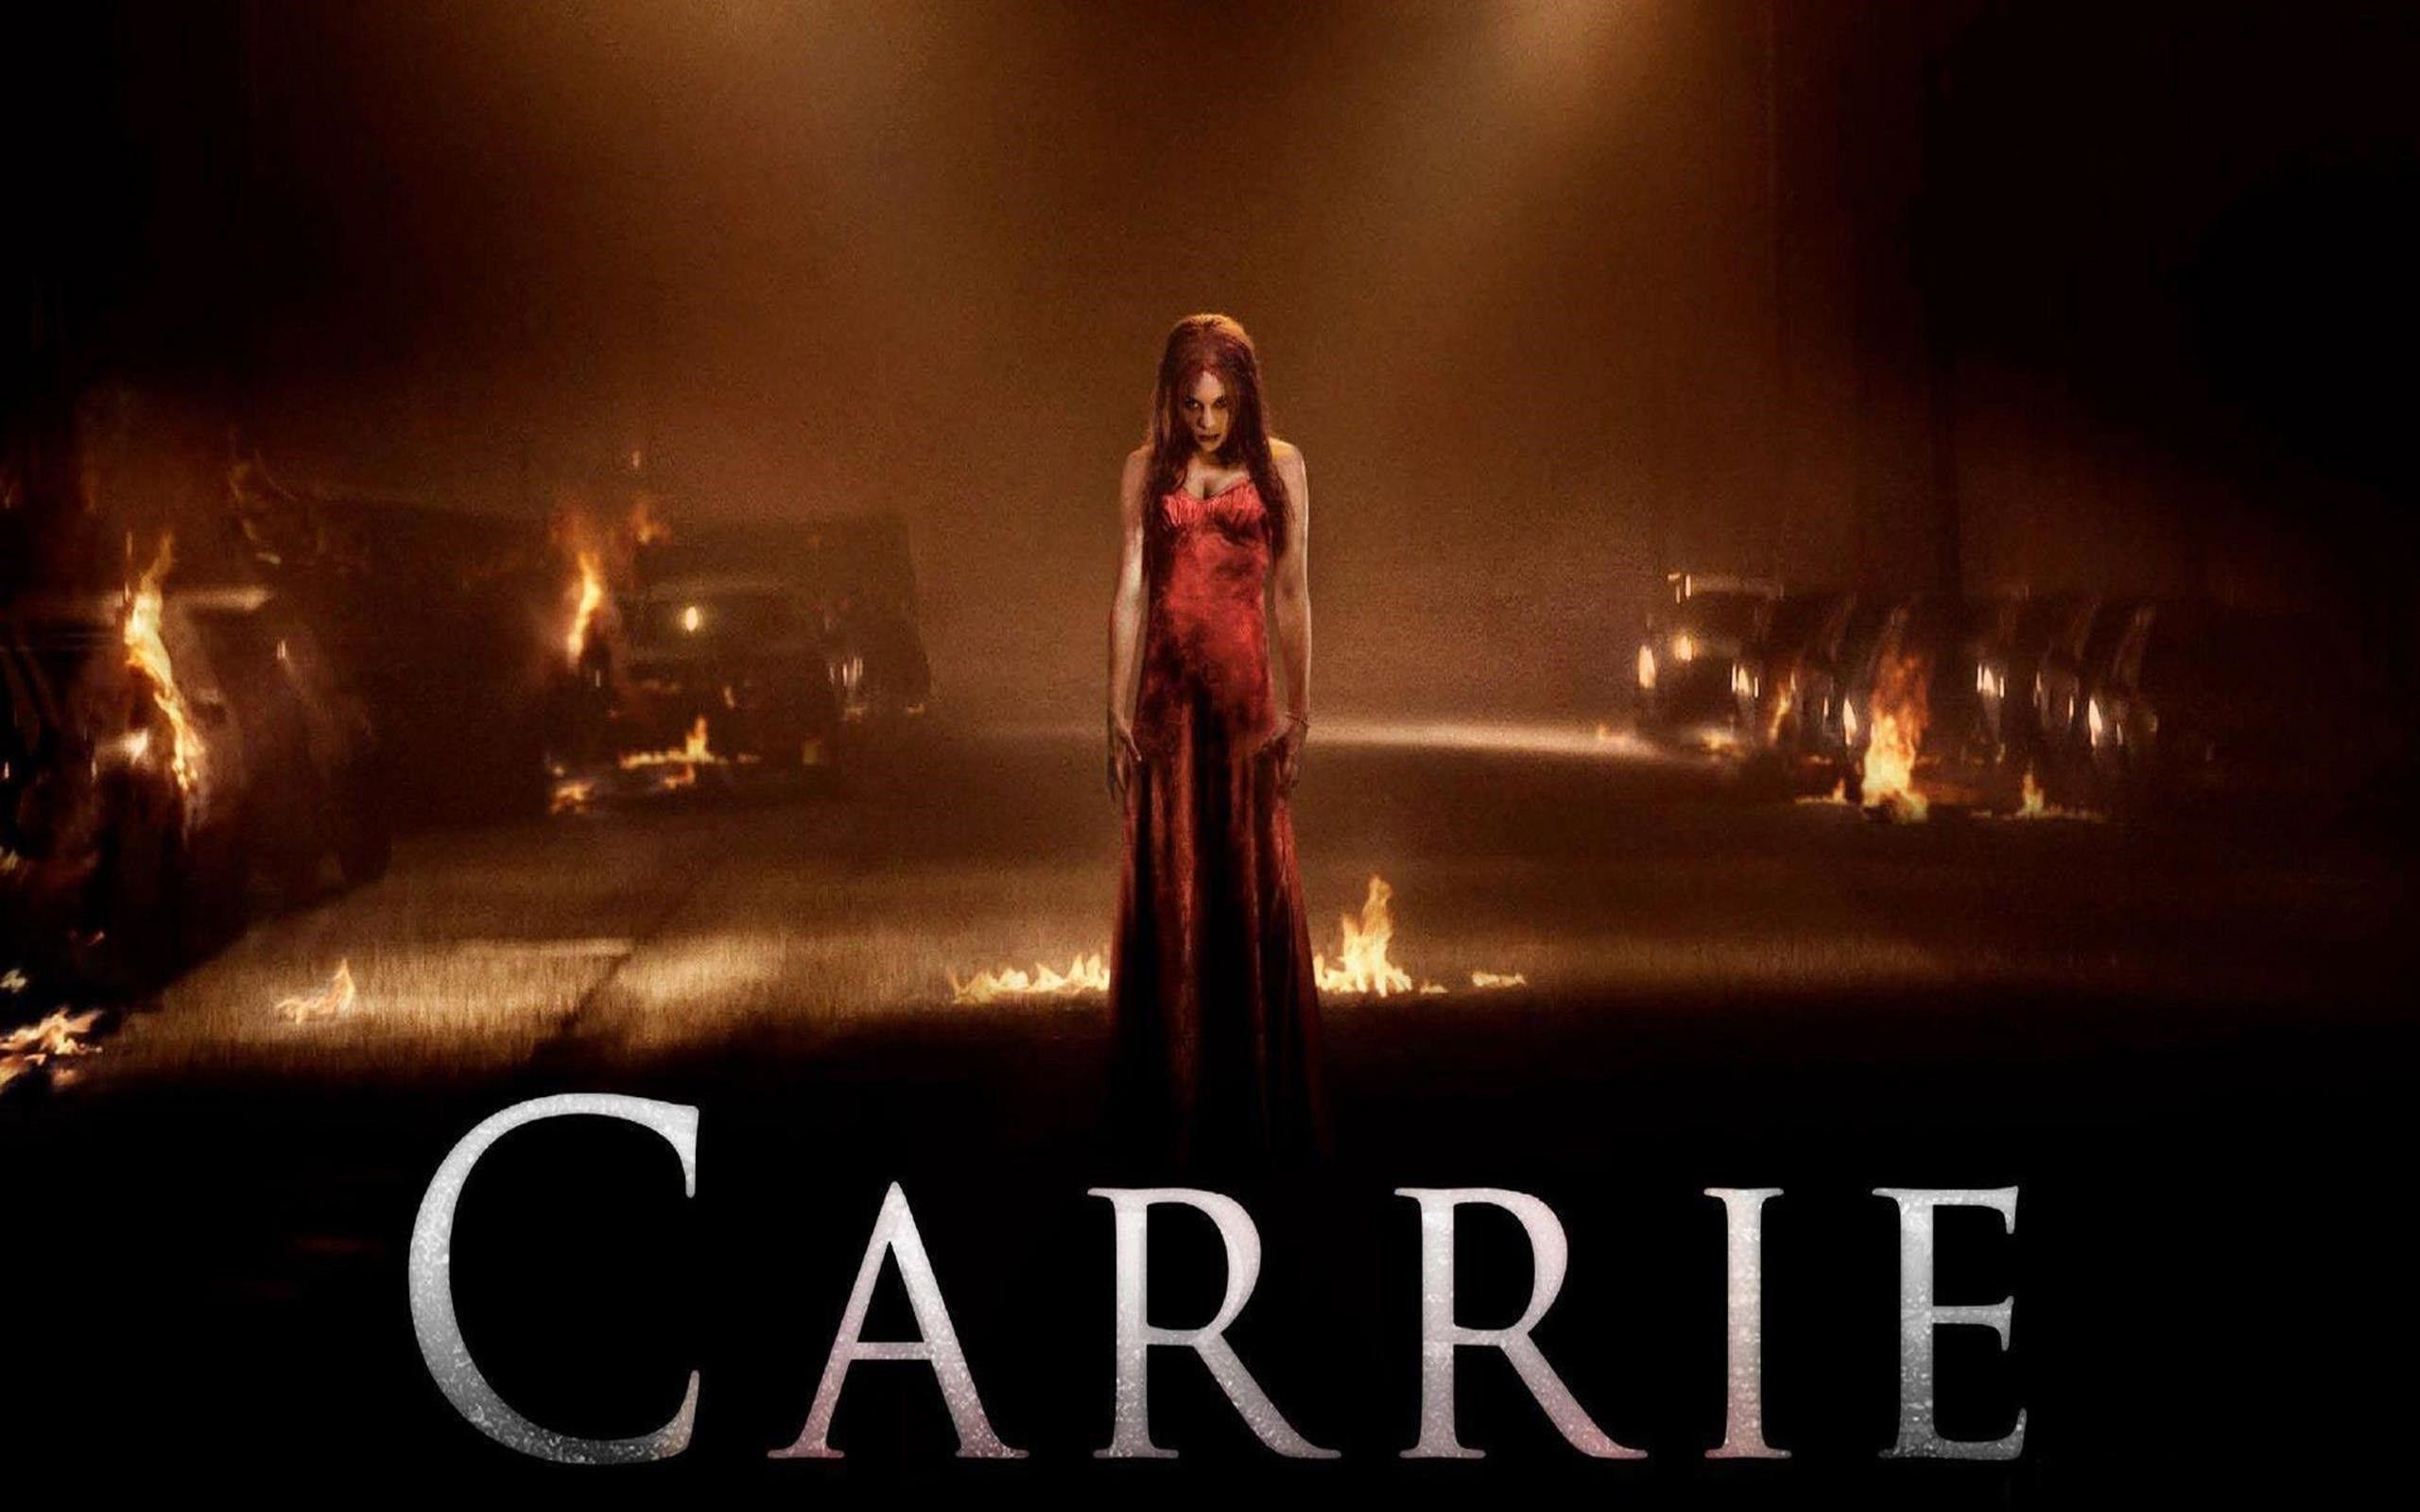 2560x1600 Carrie Hollywood Horror Movie HD Wallpaper Desktop Backgrounds Free